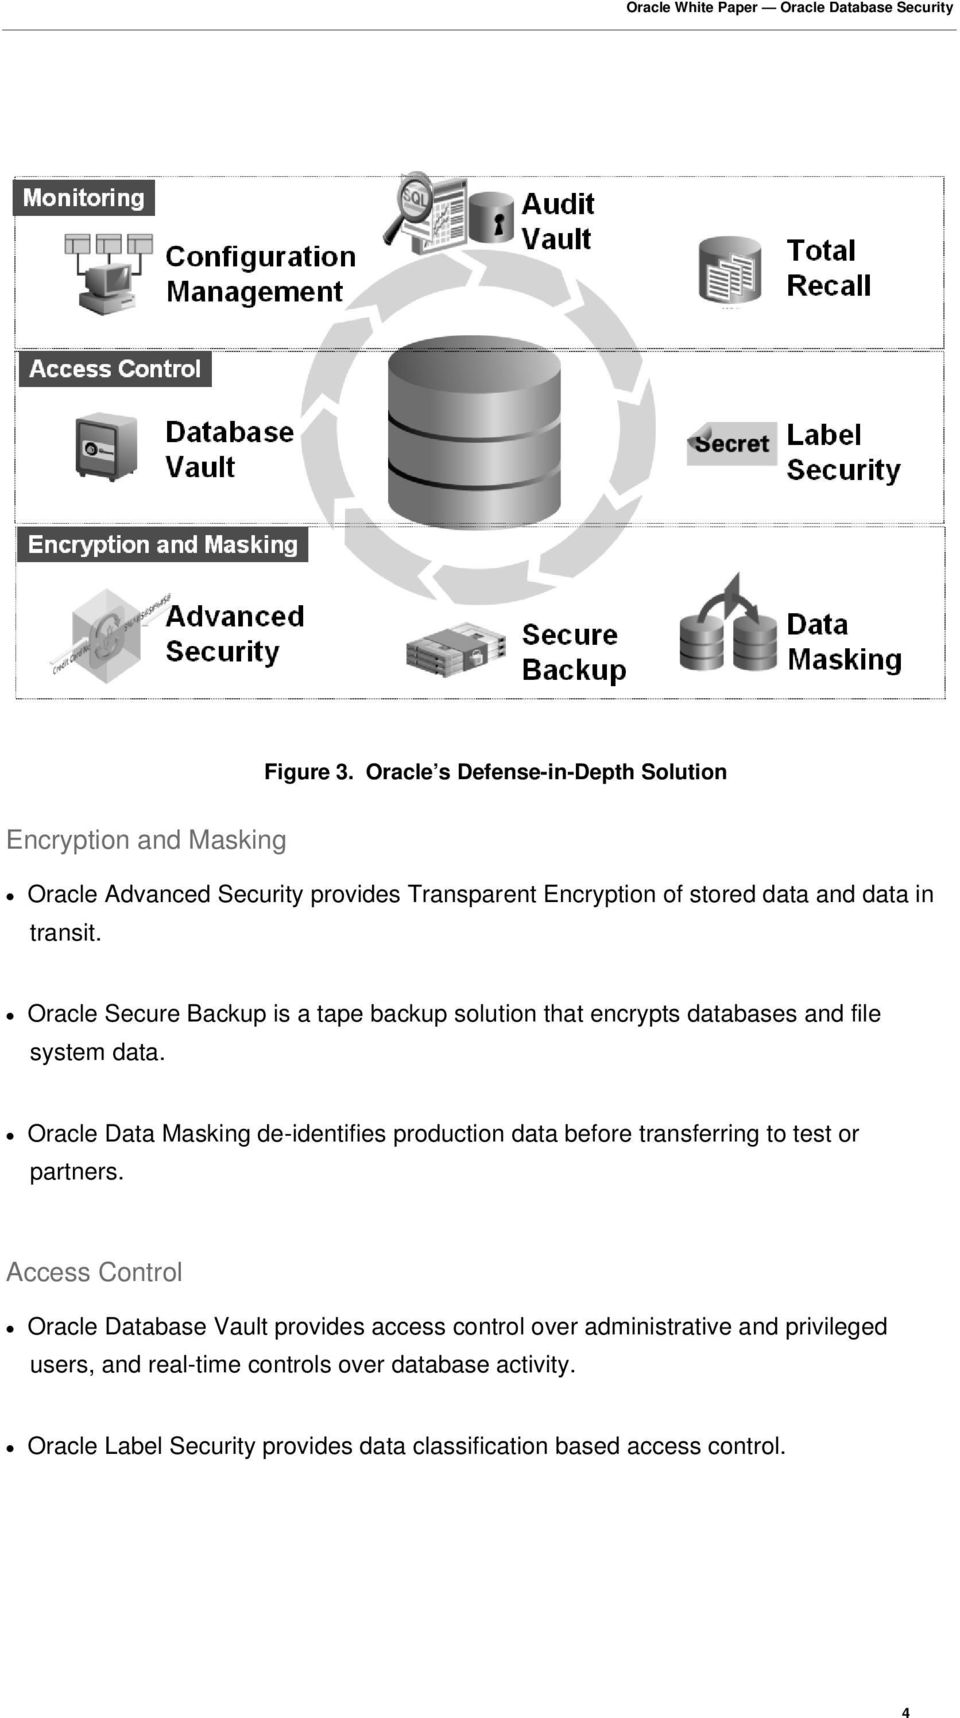 transit. Oracle Secure Backup is a tape backup solution that encrypts databases and file system data.